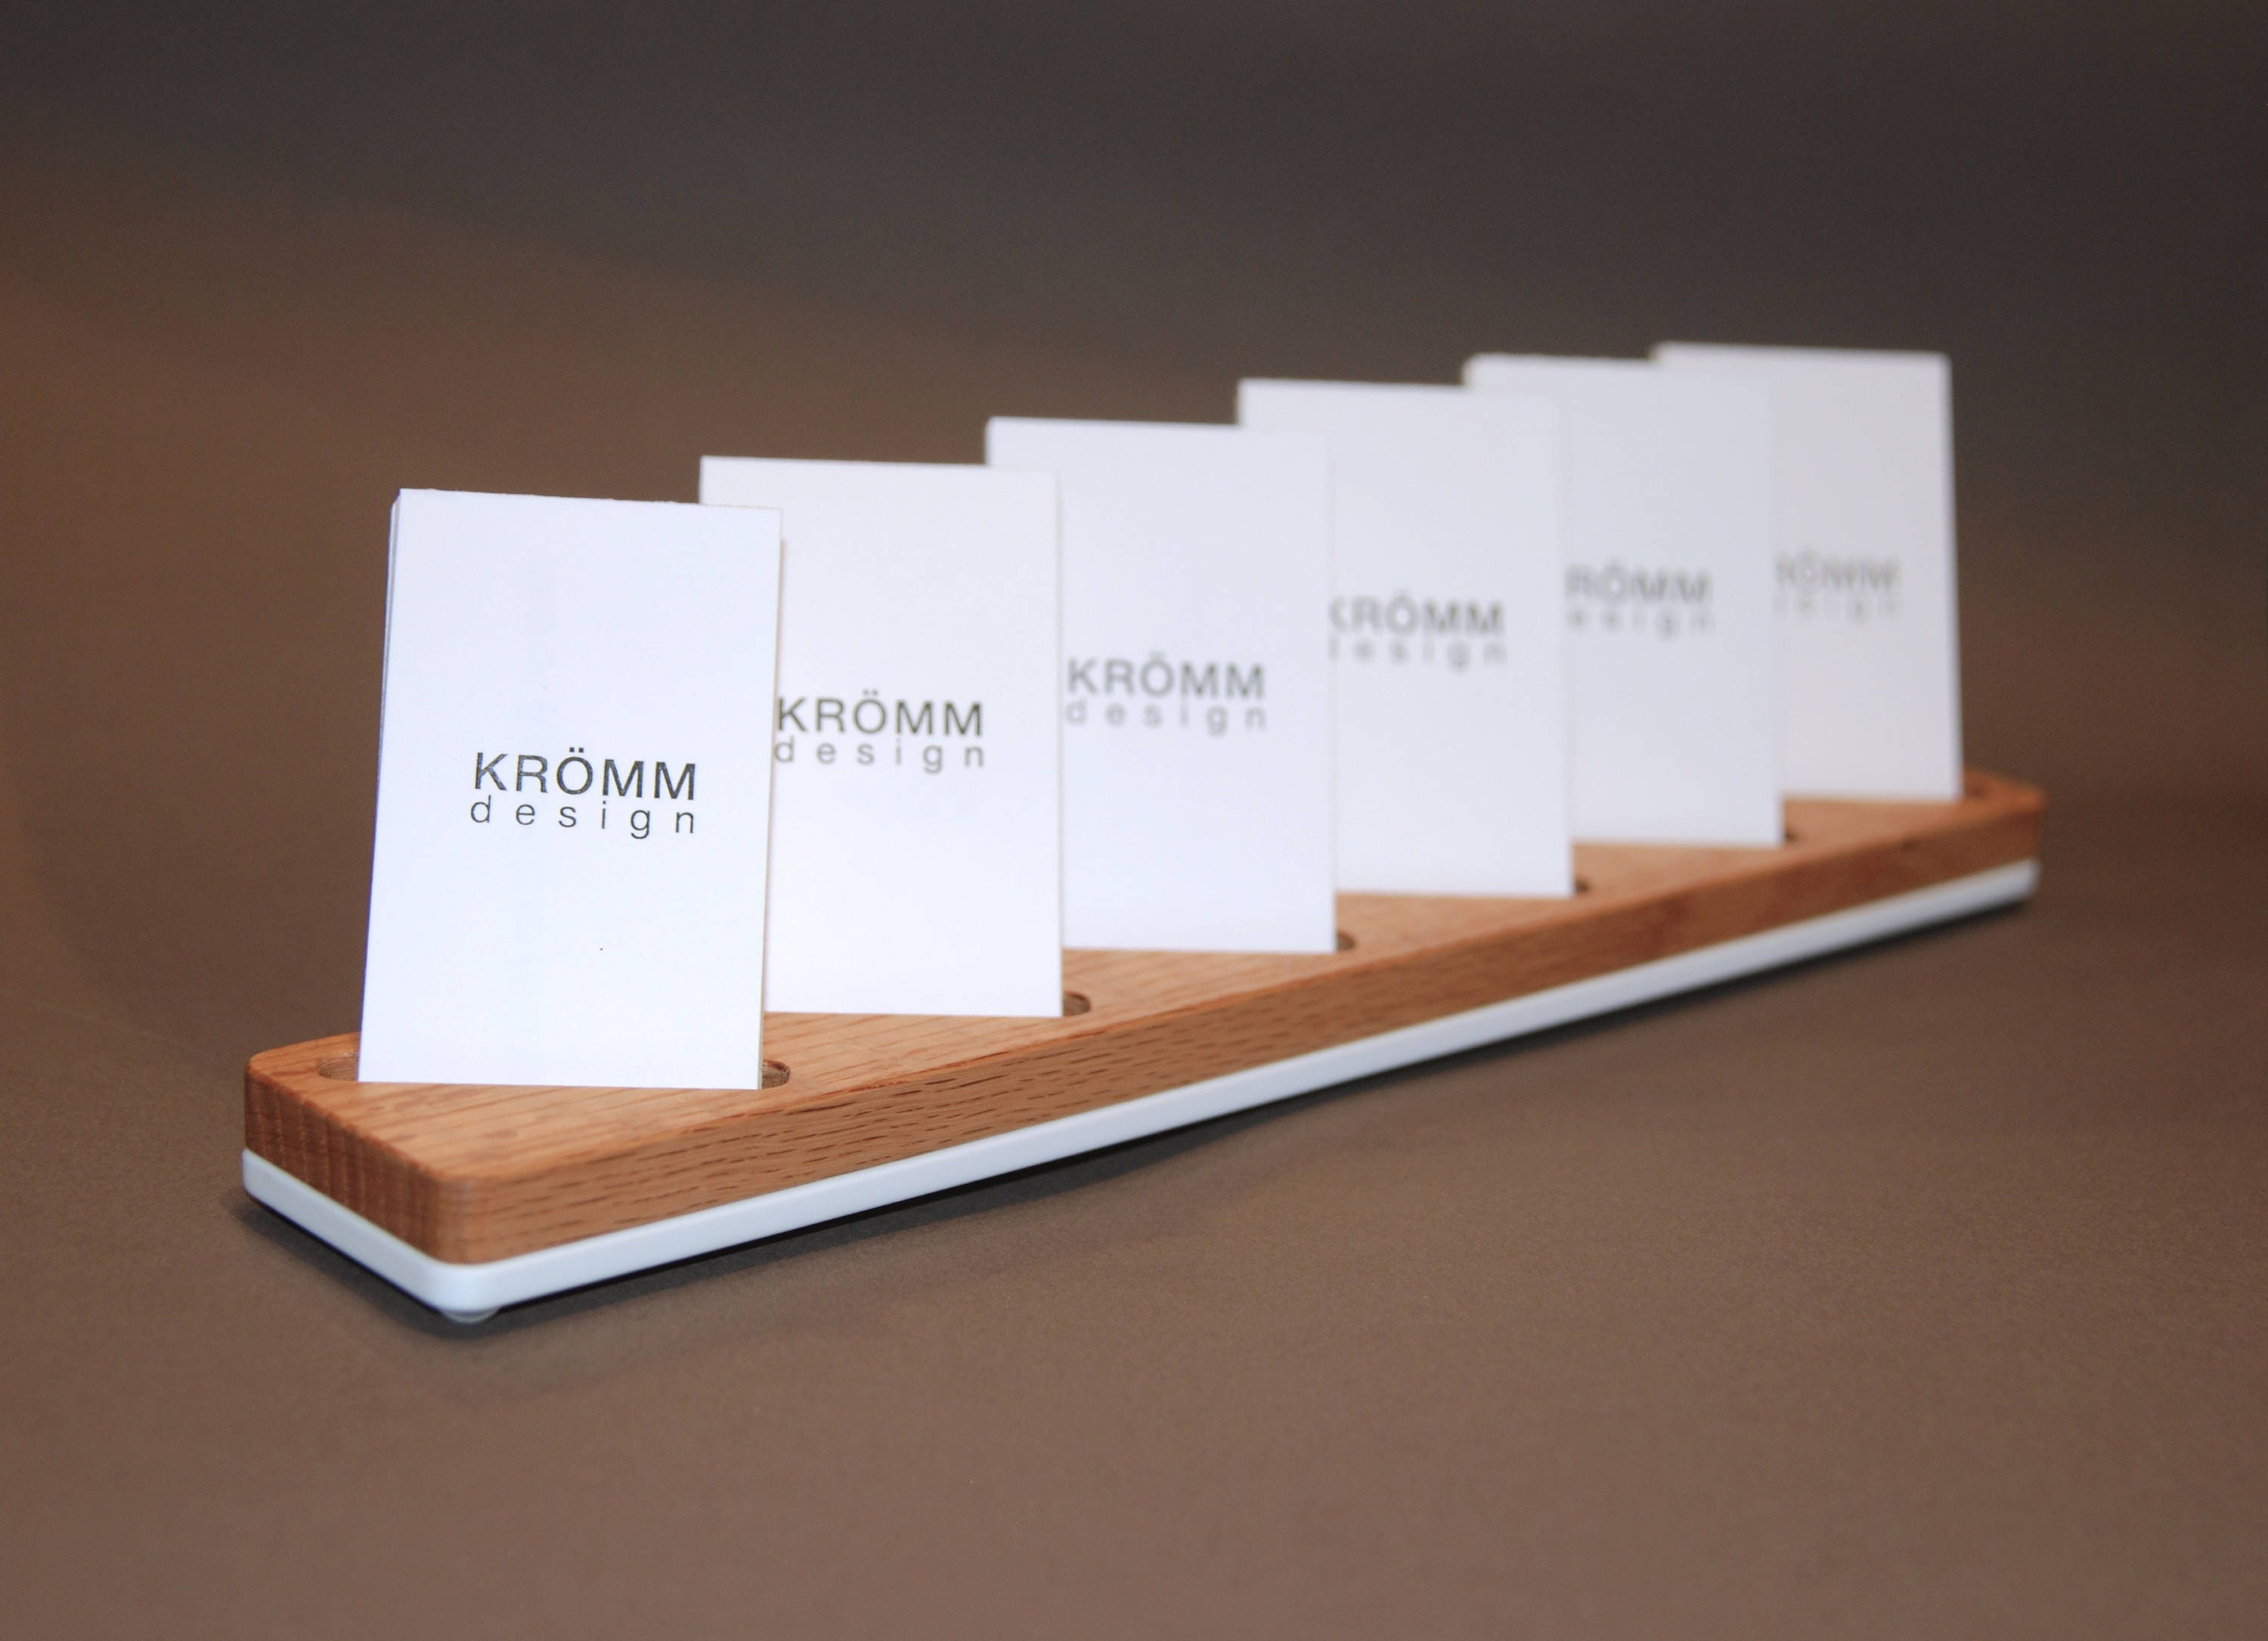 Multiple moo business card stand oak wood and white acrylic multiple moo business card stand oak wood and white acrylic business card display 6 vertical card stand in oak wood and white acrylic reheart Choice Image